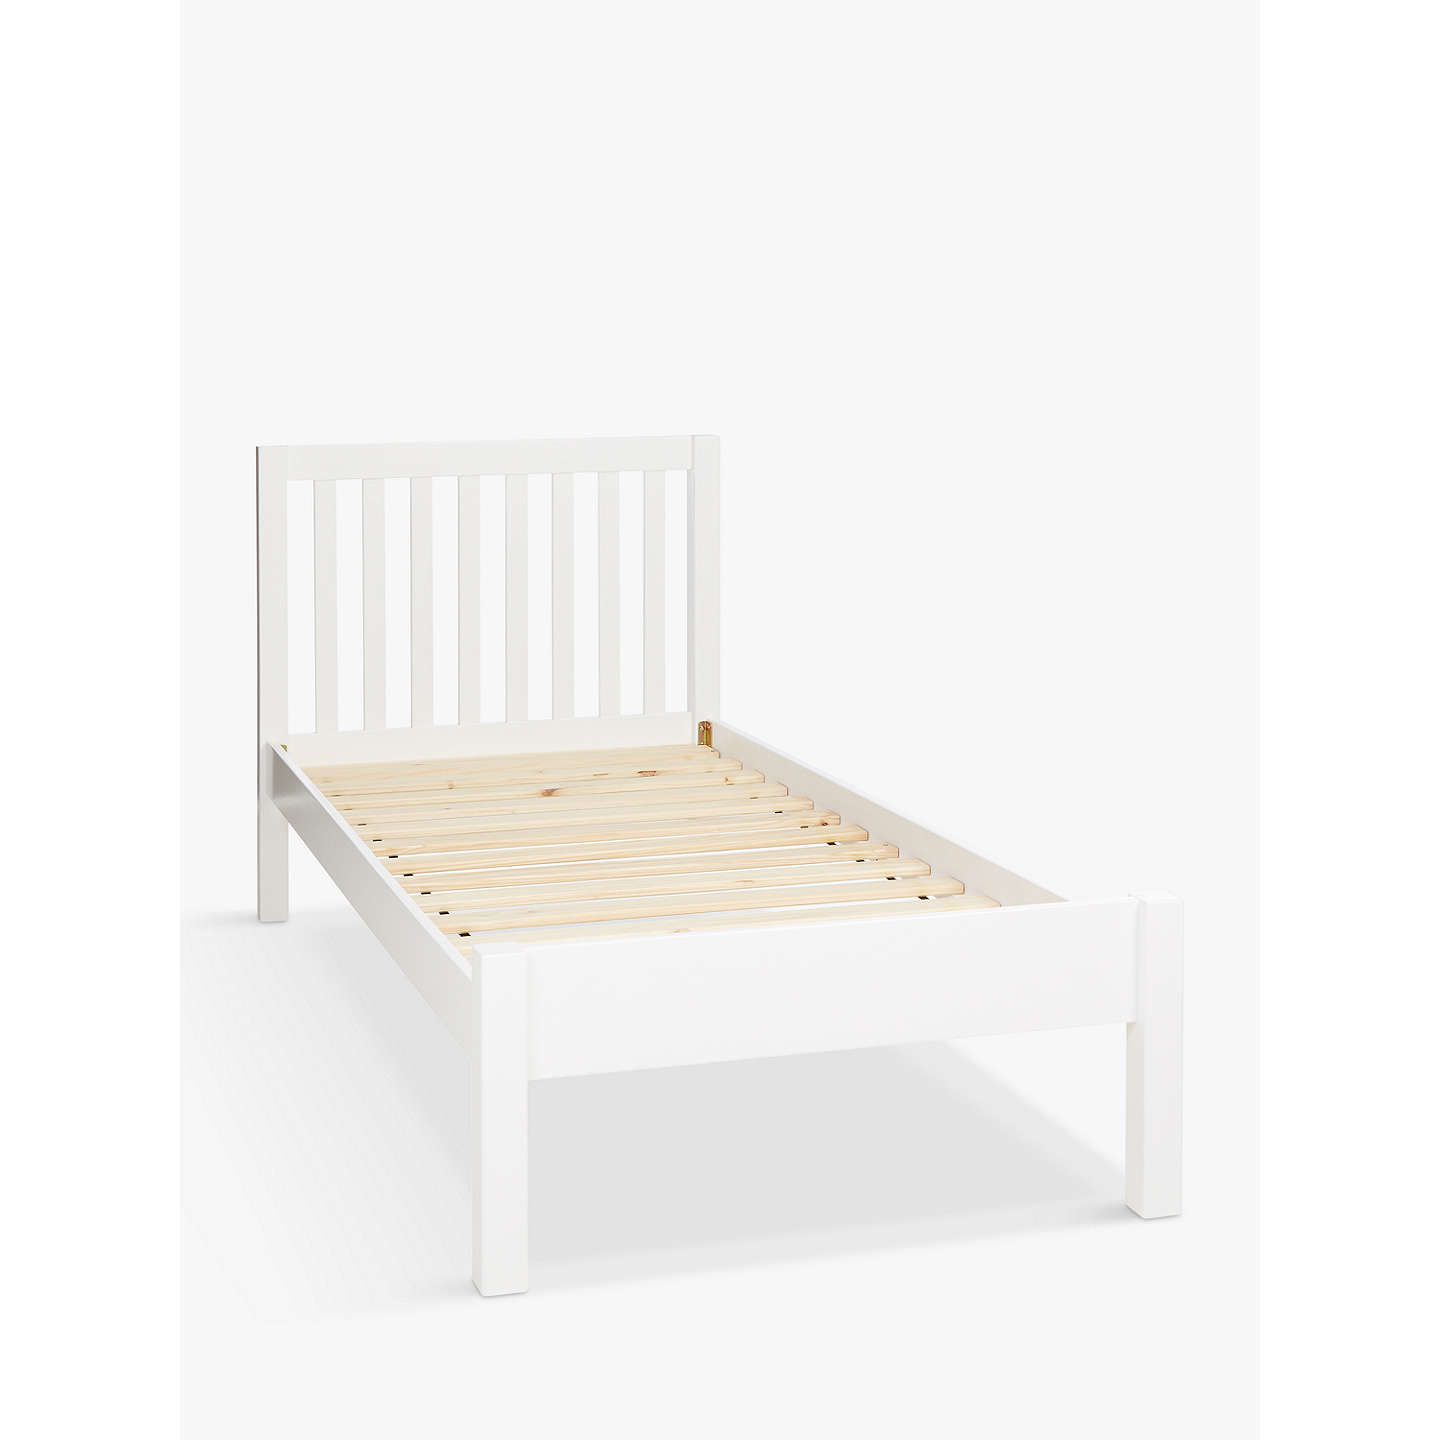 at main pdp john johnlewis rsp com wilton online frame white child compliant buyjohn lewis single bed